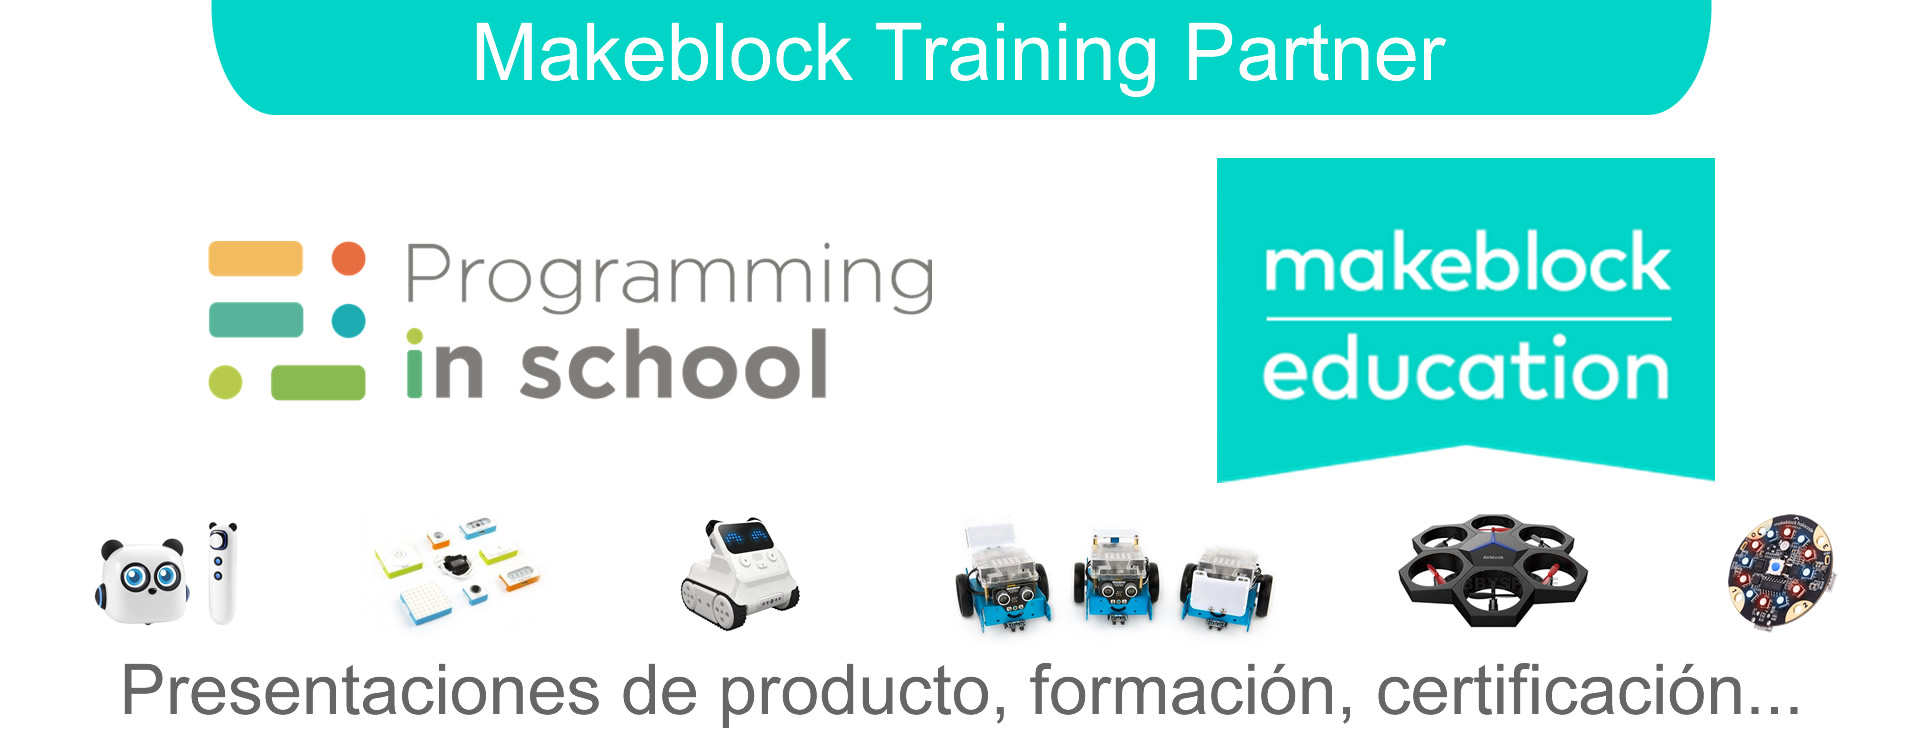 Makeblock Education Partner